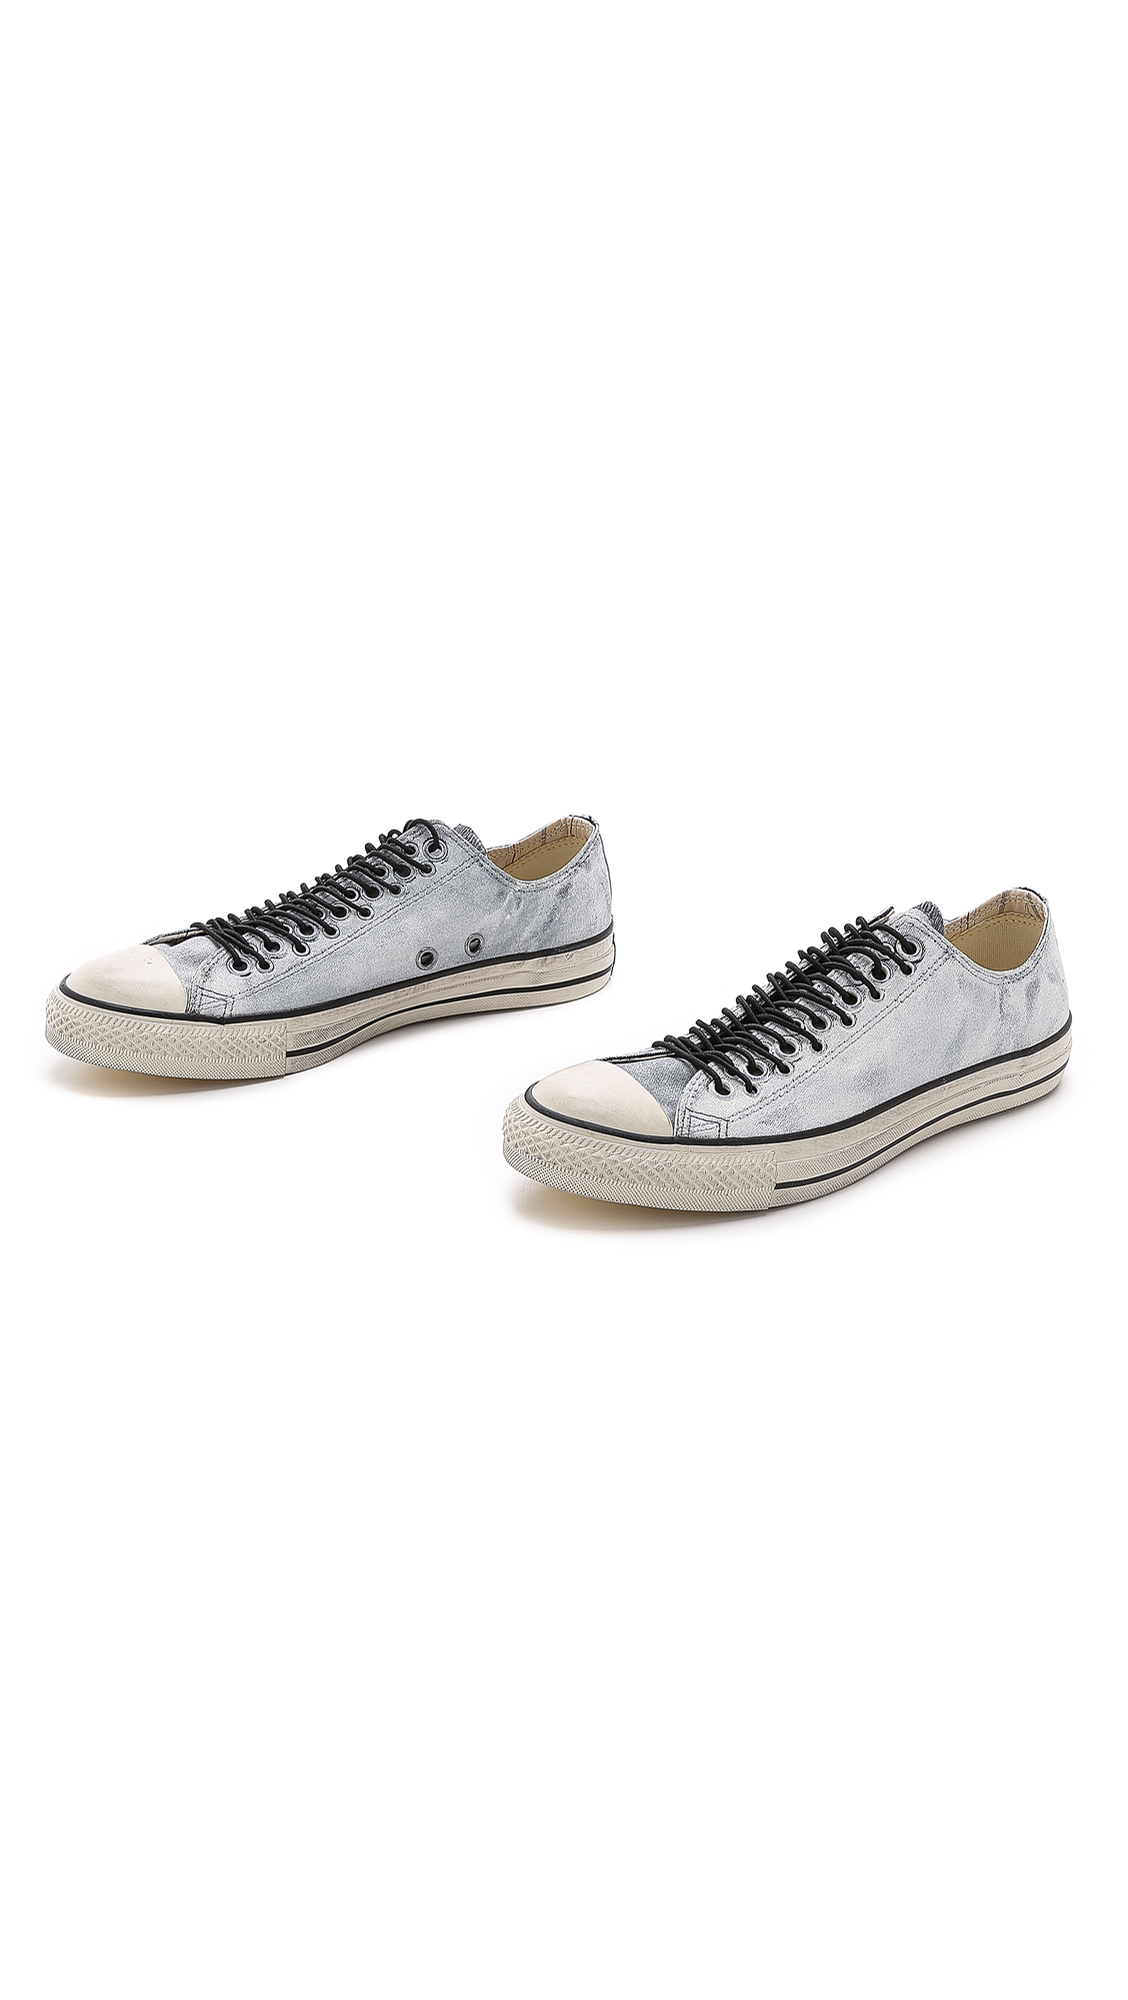 14a56fe9ea45 Converse All Star Multi Eyelet Sneakers in White for Men - Lyst